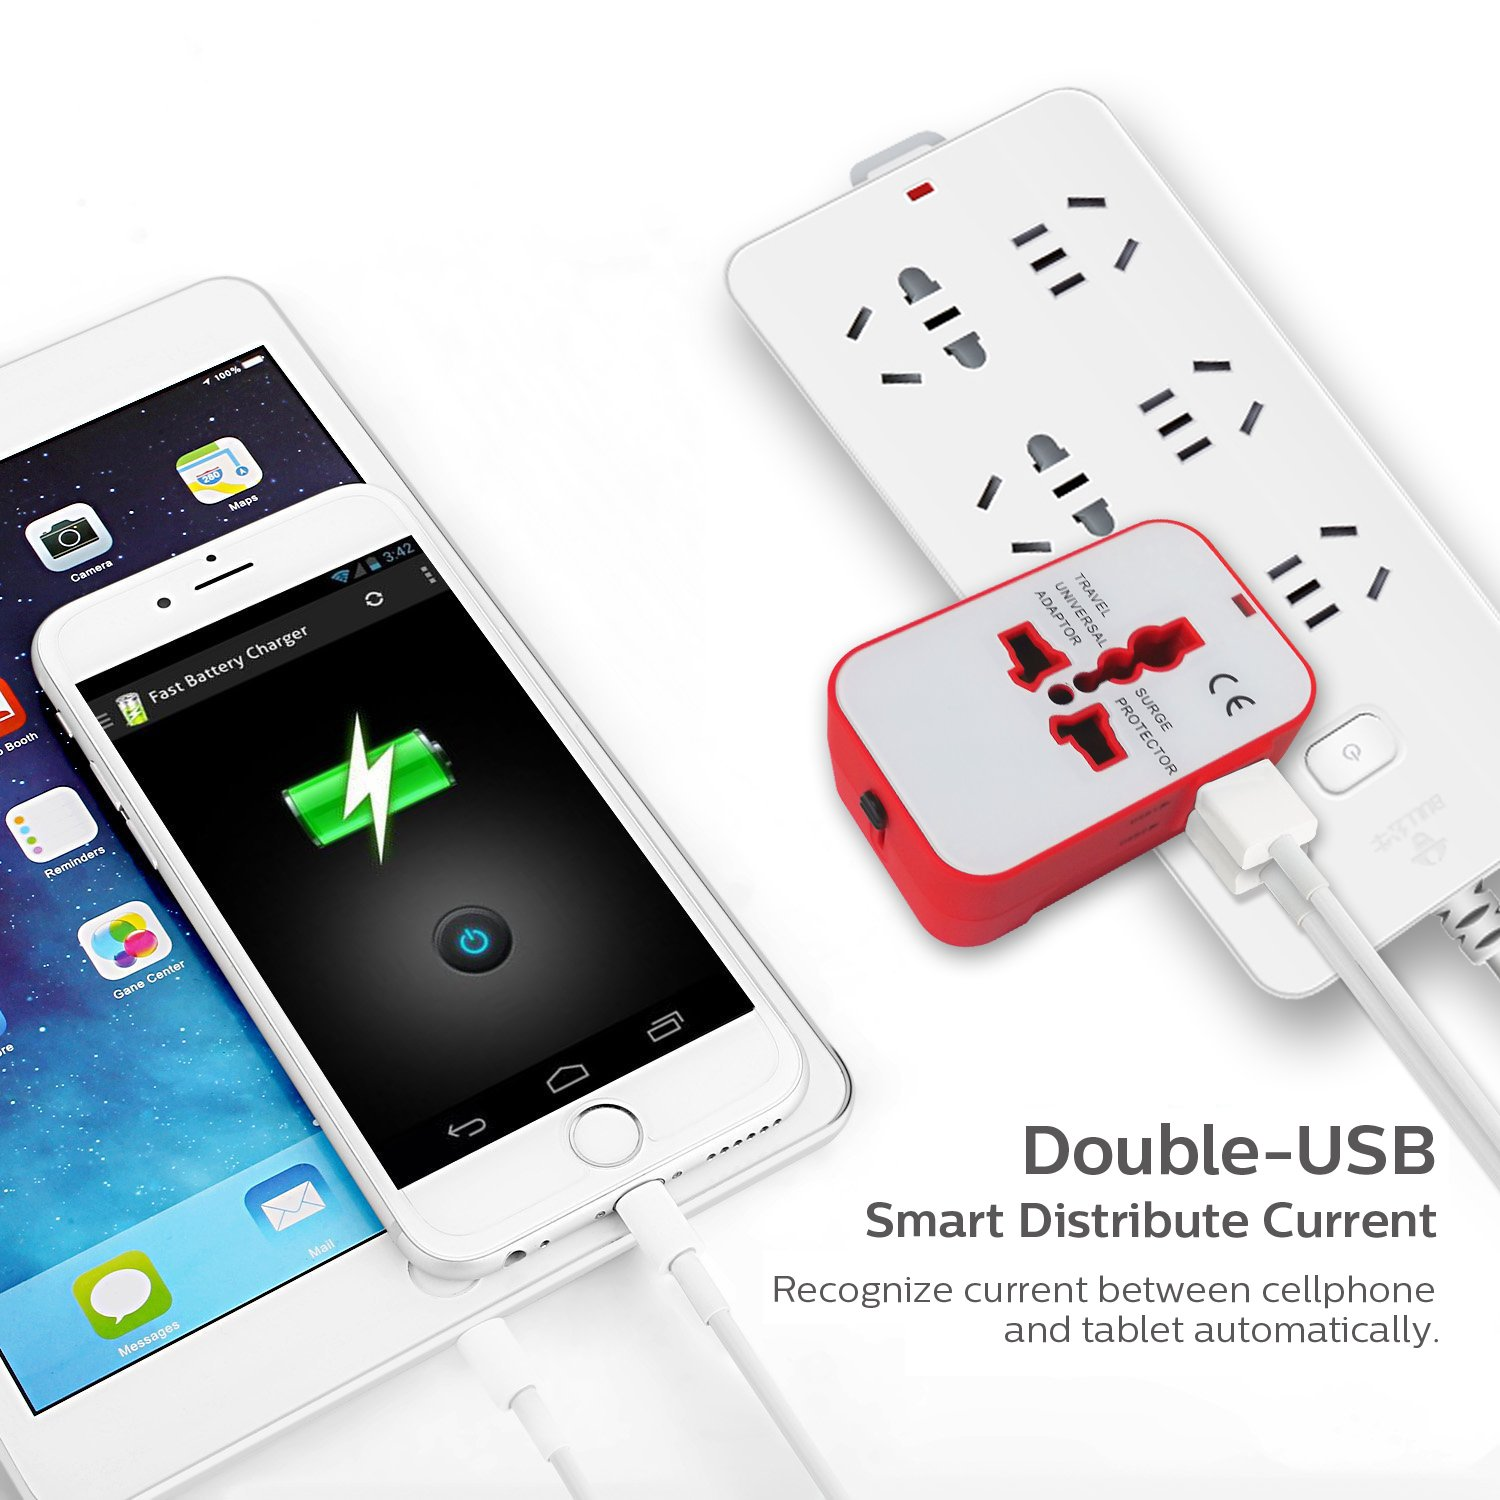 All in One International Universal Travel Adapter,Dual USB Charging Ports Converter for USA EU UK AUS European Compatible with Mobile Phone,Power Bank,Tablet,Laptop and Earphone. (Red) by LALAFO (Image #5)